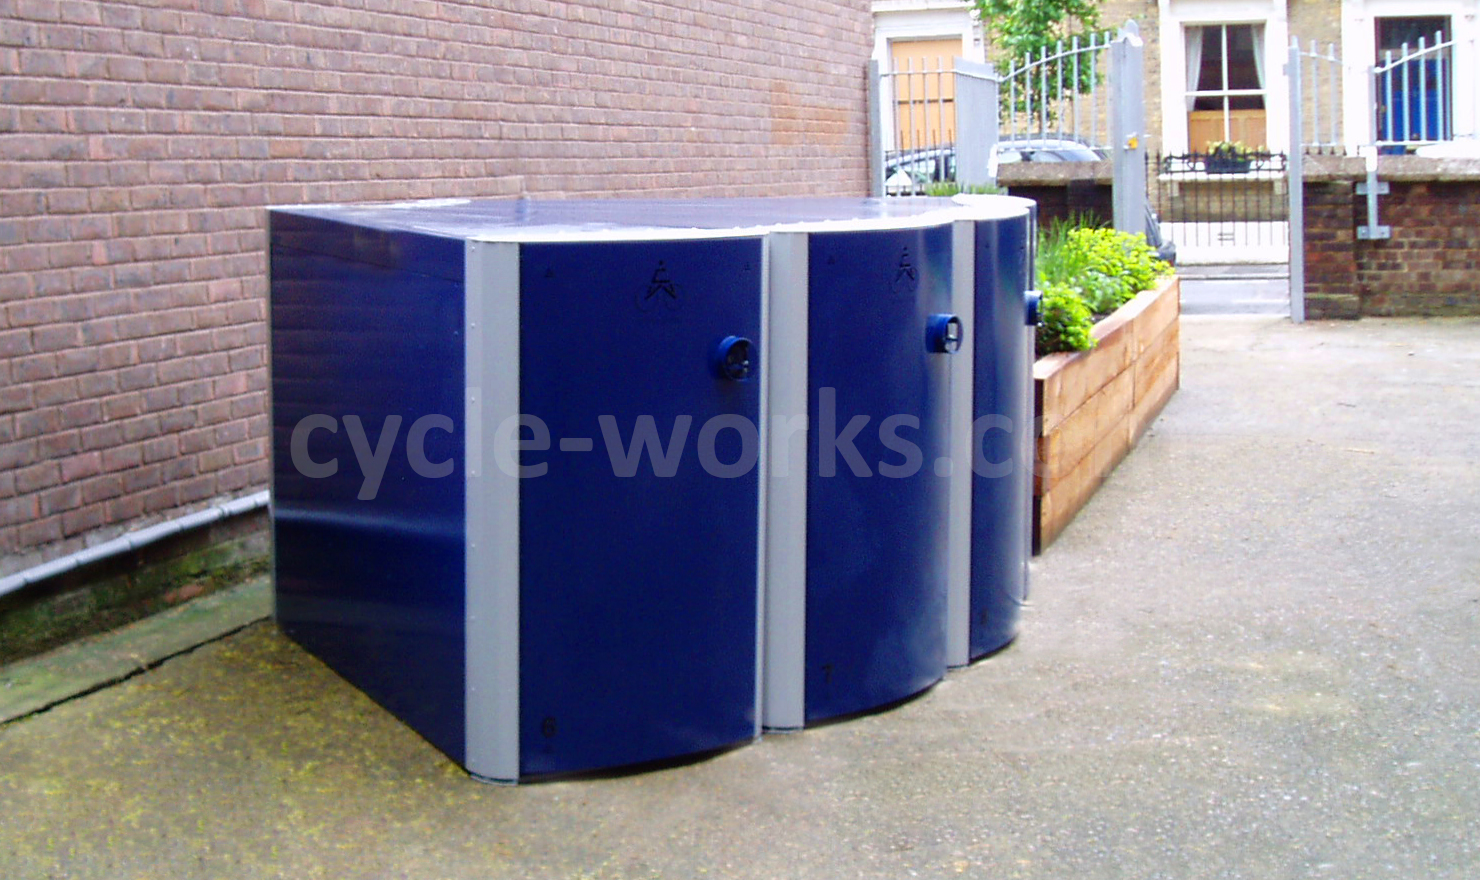 Tower Hamlets Residential Bike Locker Rental